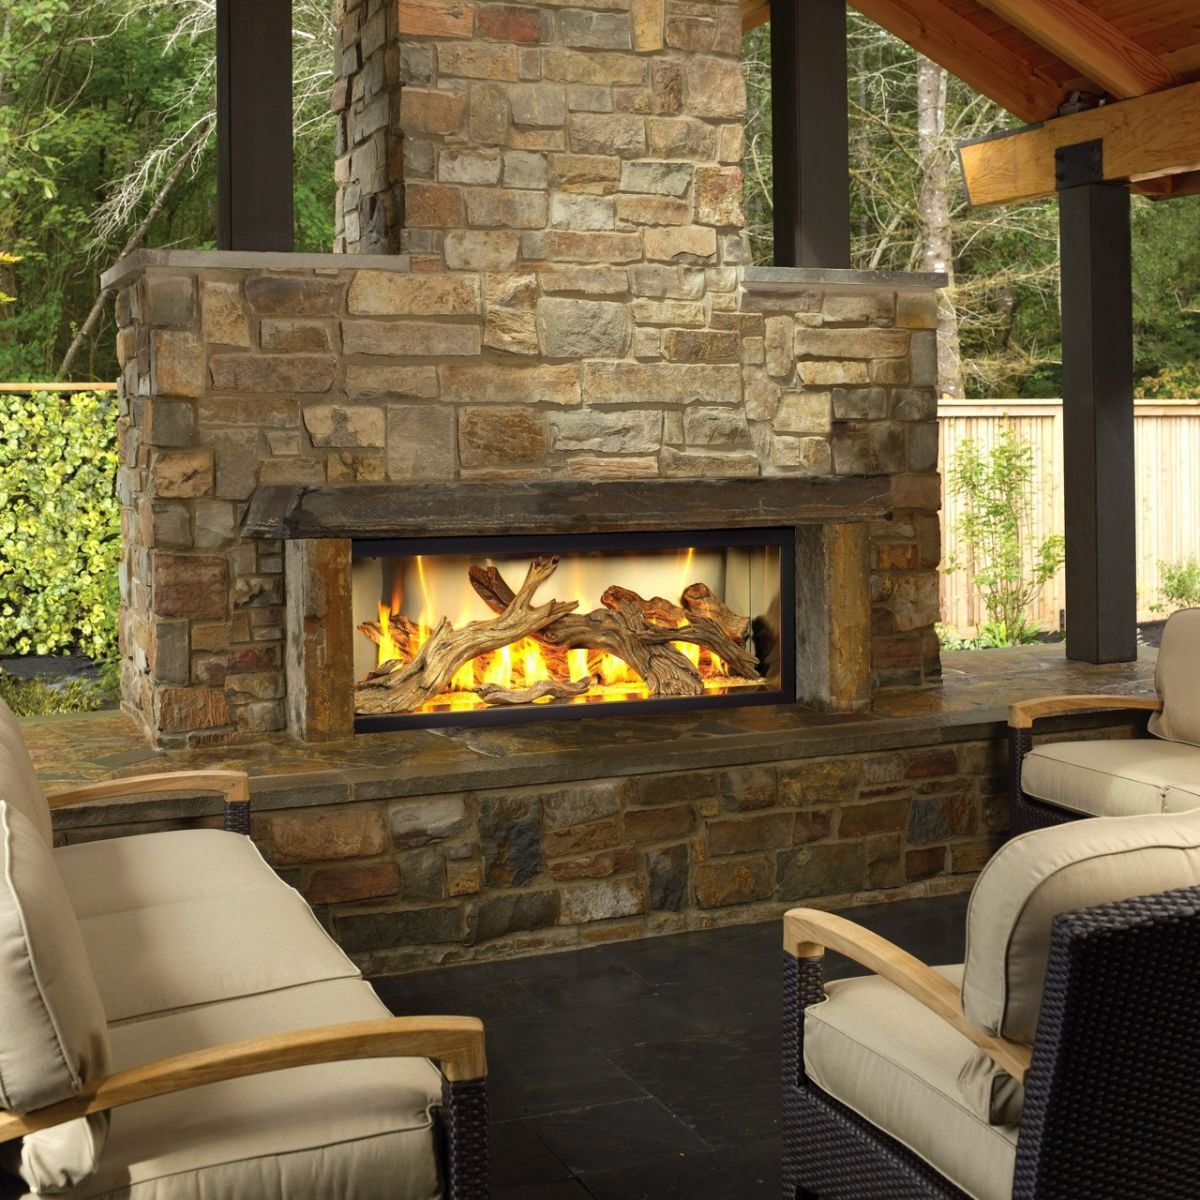 Outdoor fireplace designs colorado springs fire pits and for Fire pit ideas outdoor living